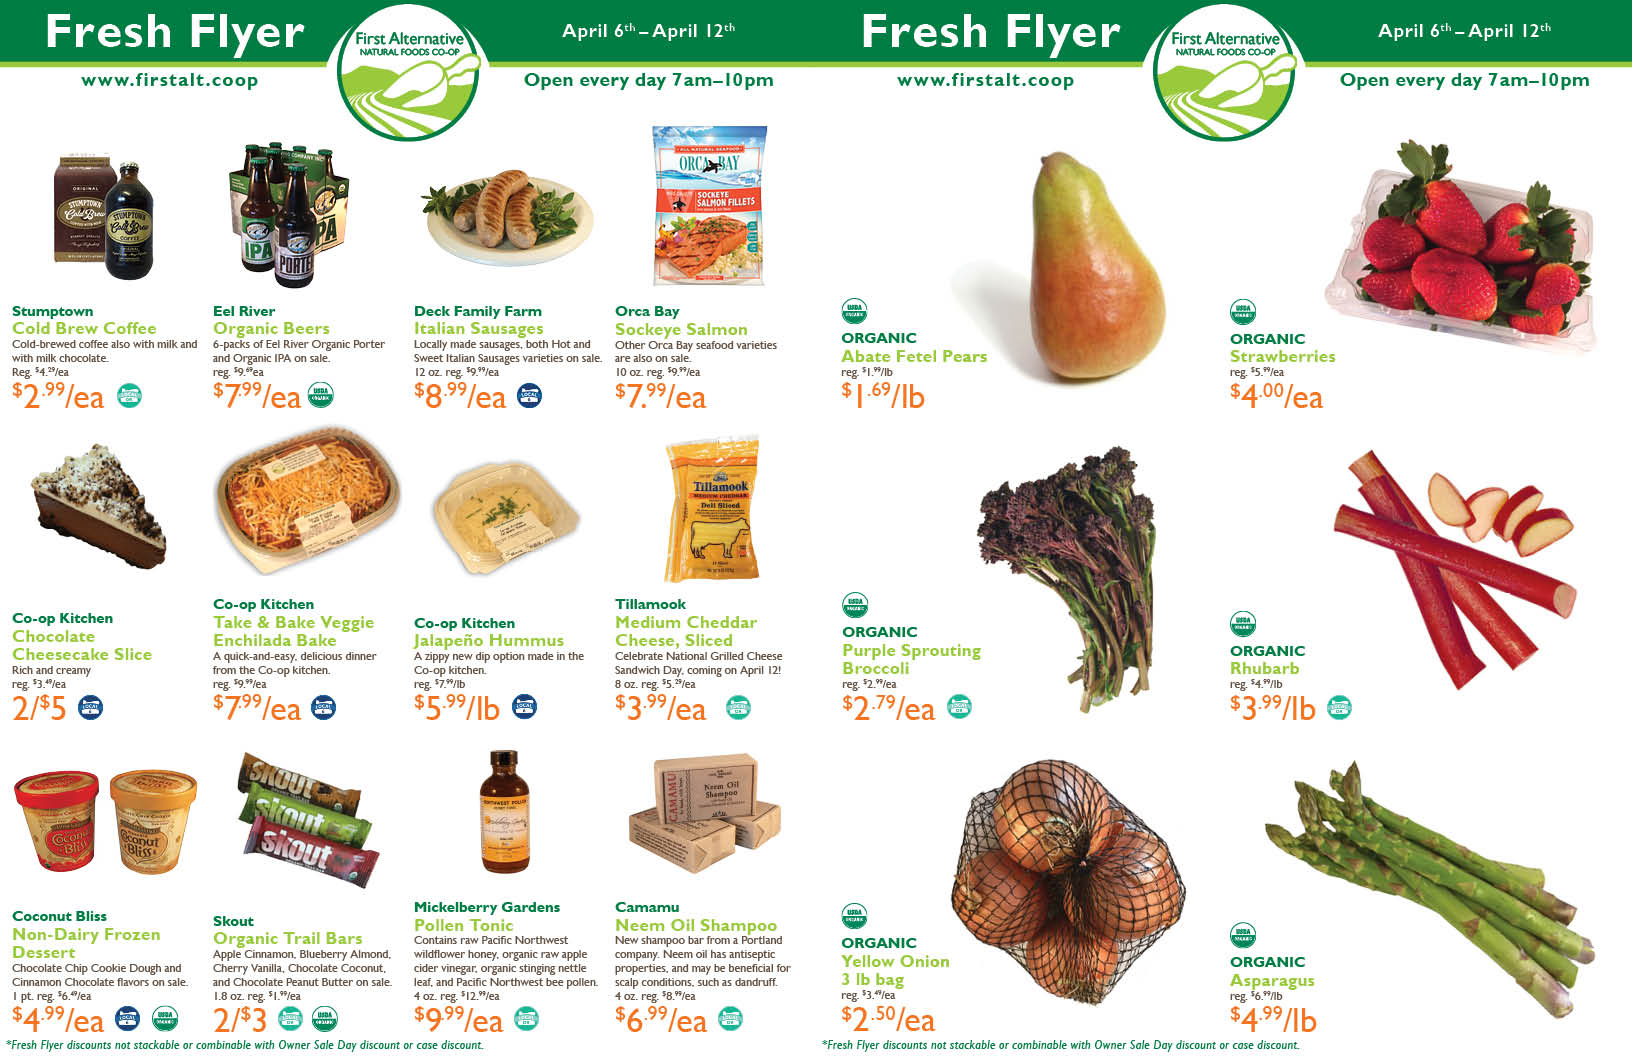 First Alternative Co-op Fresh Flyer April 6-12